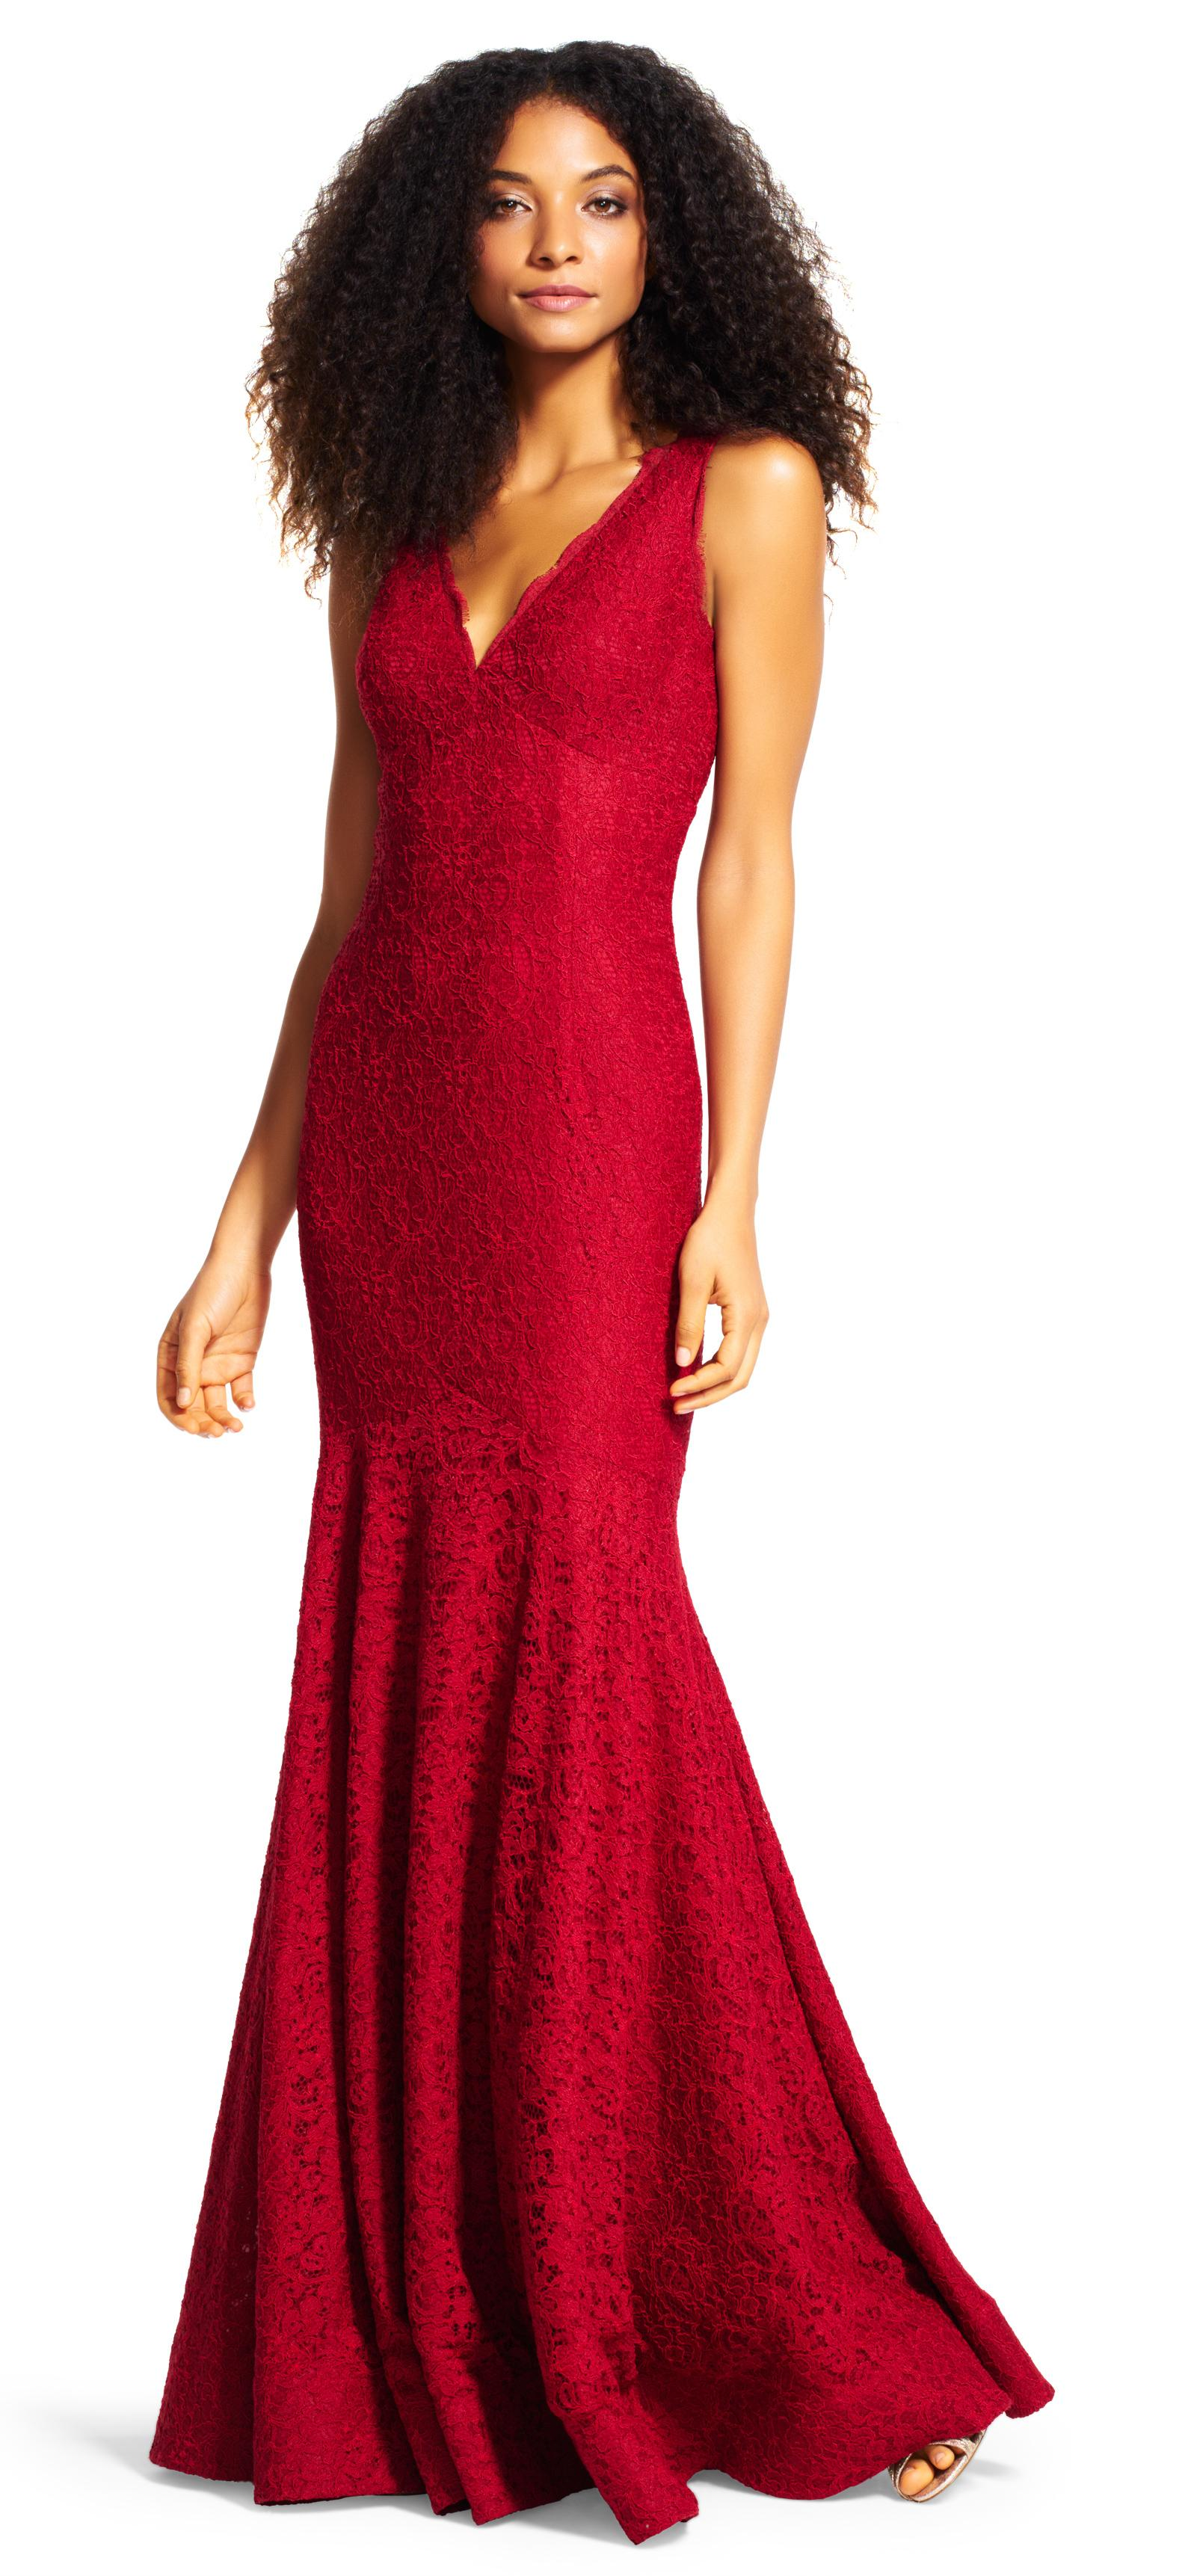 Adrianna Papell Crimson Red Sleeveless V-neck Lace Trumpet Gown Dress